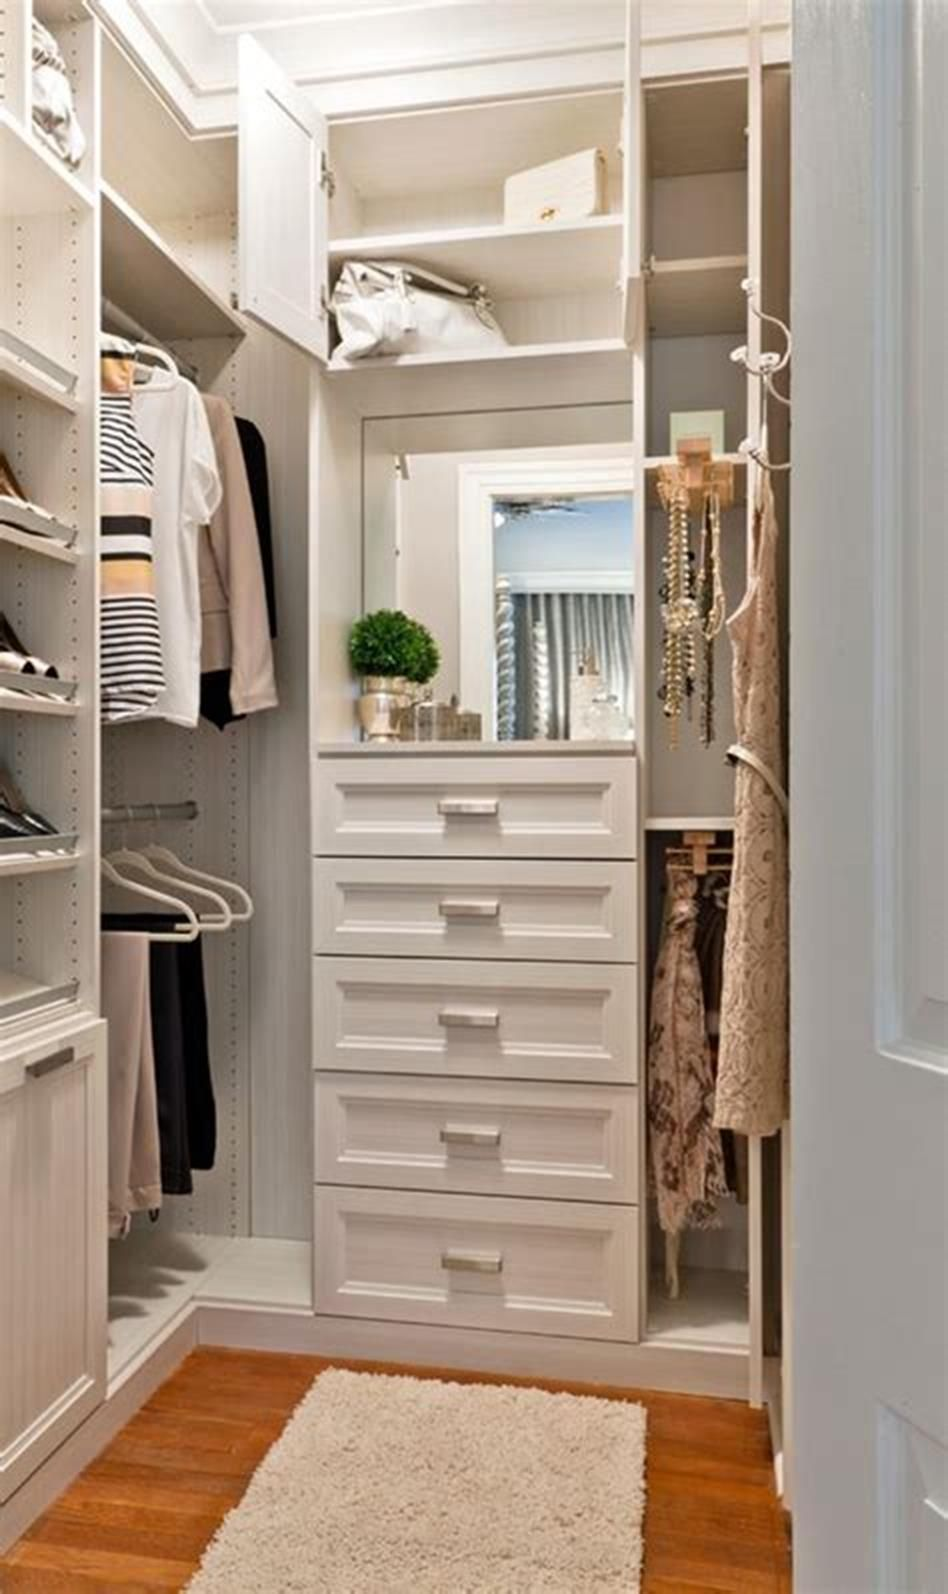 40 best small walk in bedroom closet organization and on extraordinary small walk in closet ideas makeovers id=27508